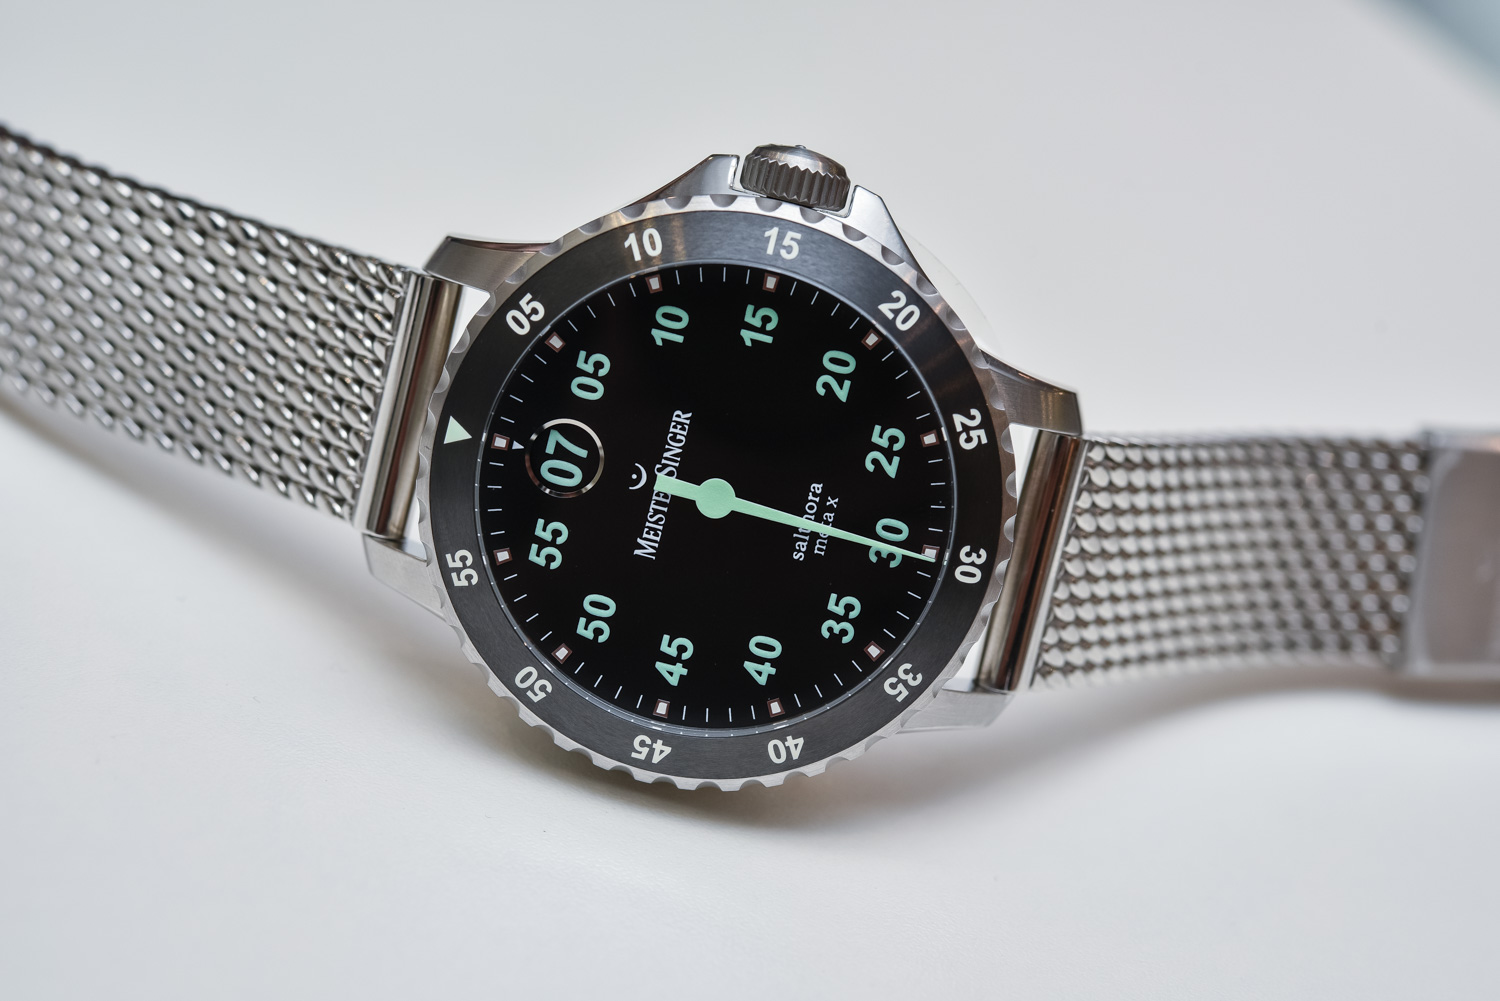 MeisterSinger Salthora Meta X - Single-Hand Jumping Hour Dive Watch